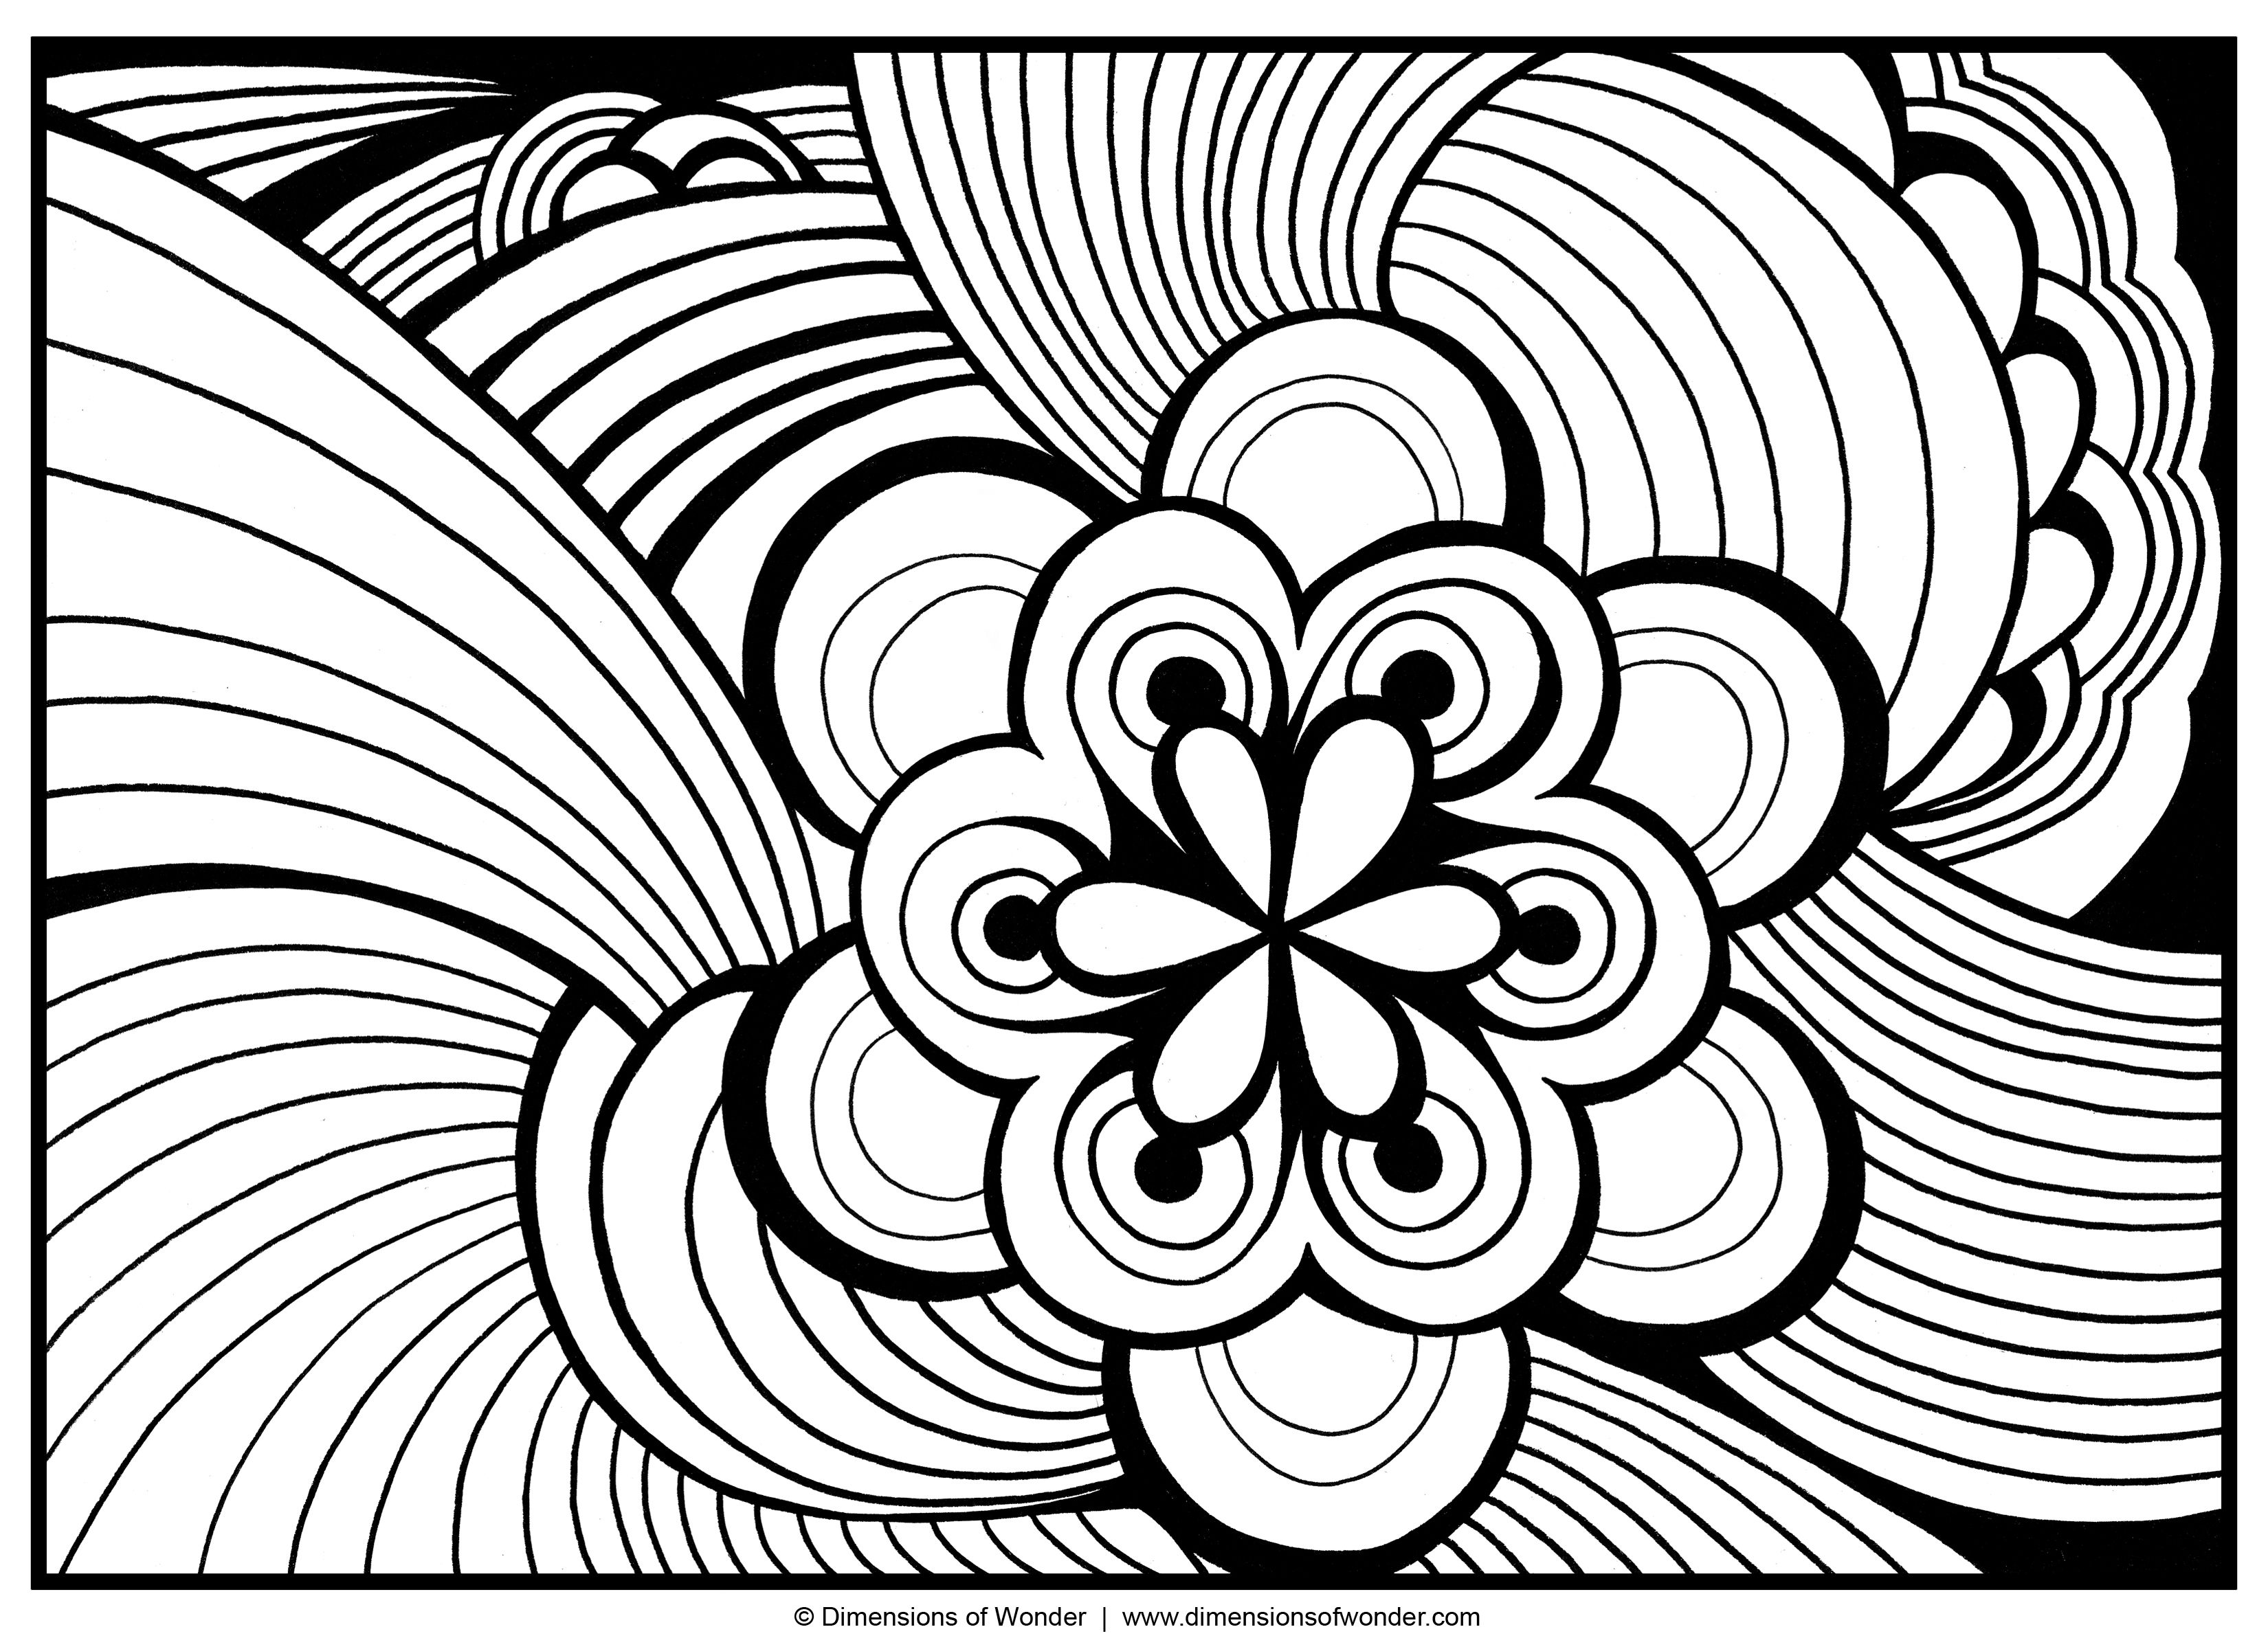 abstract coloring page # 5